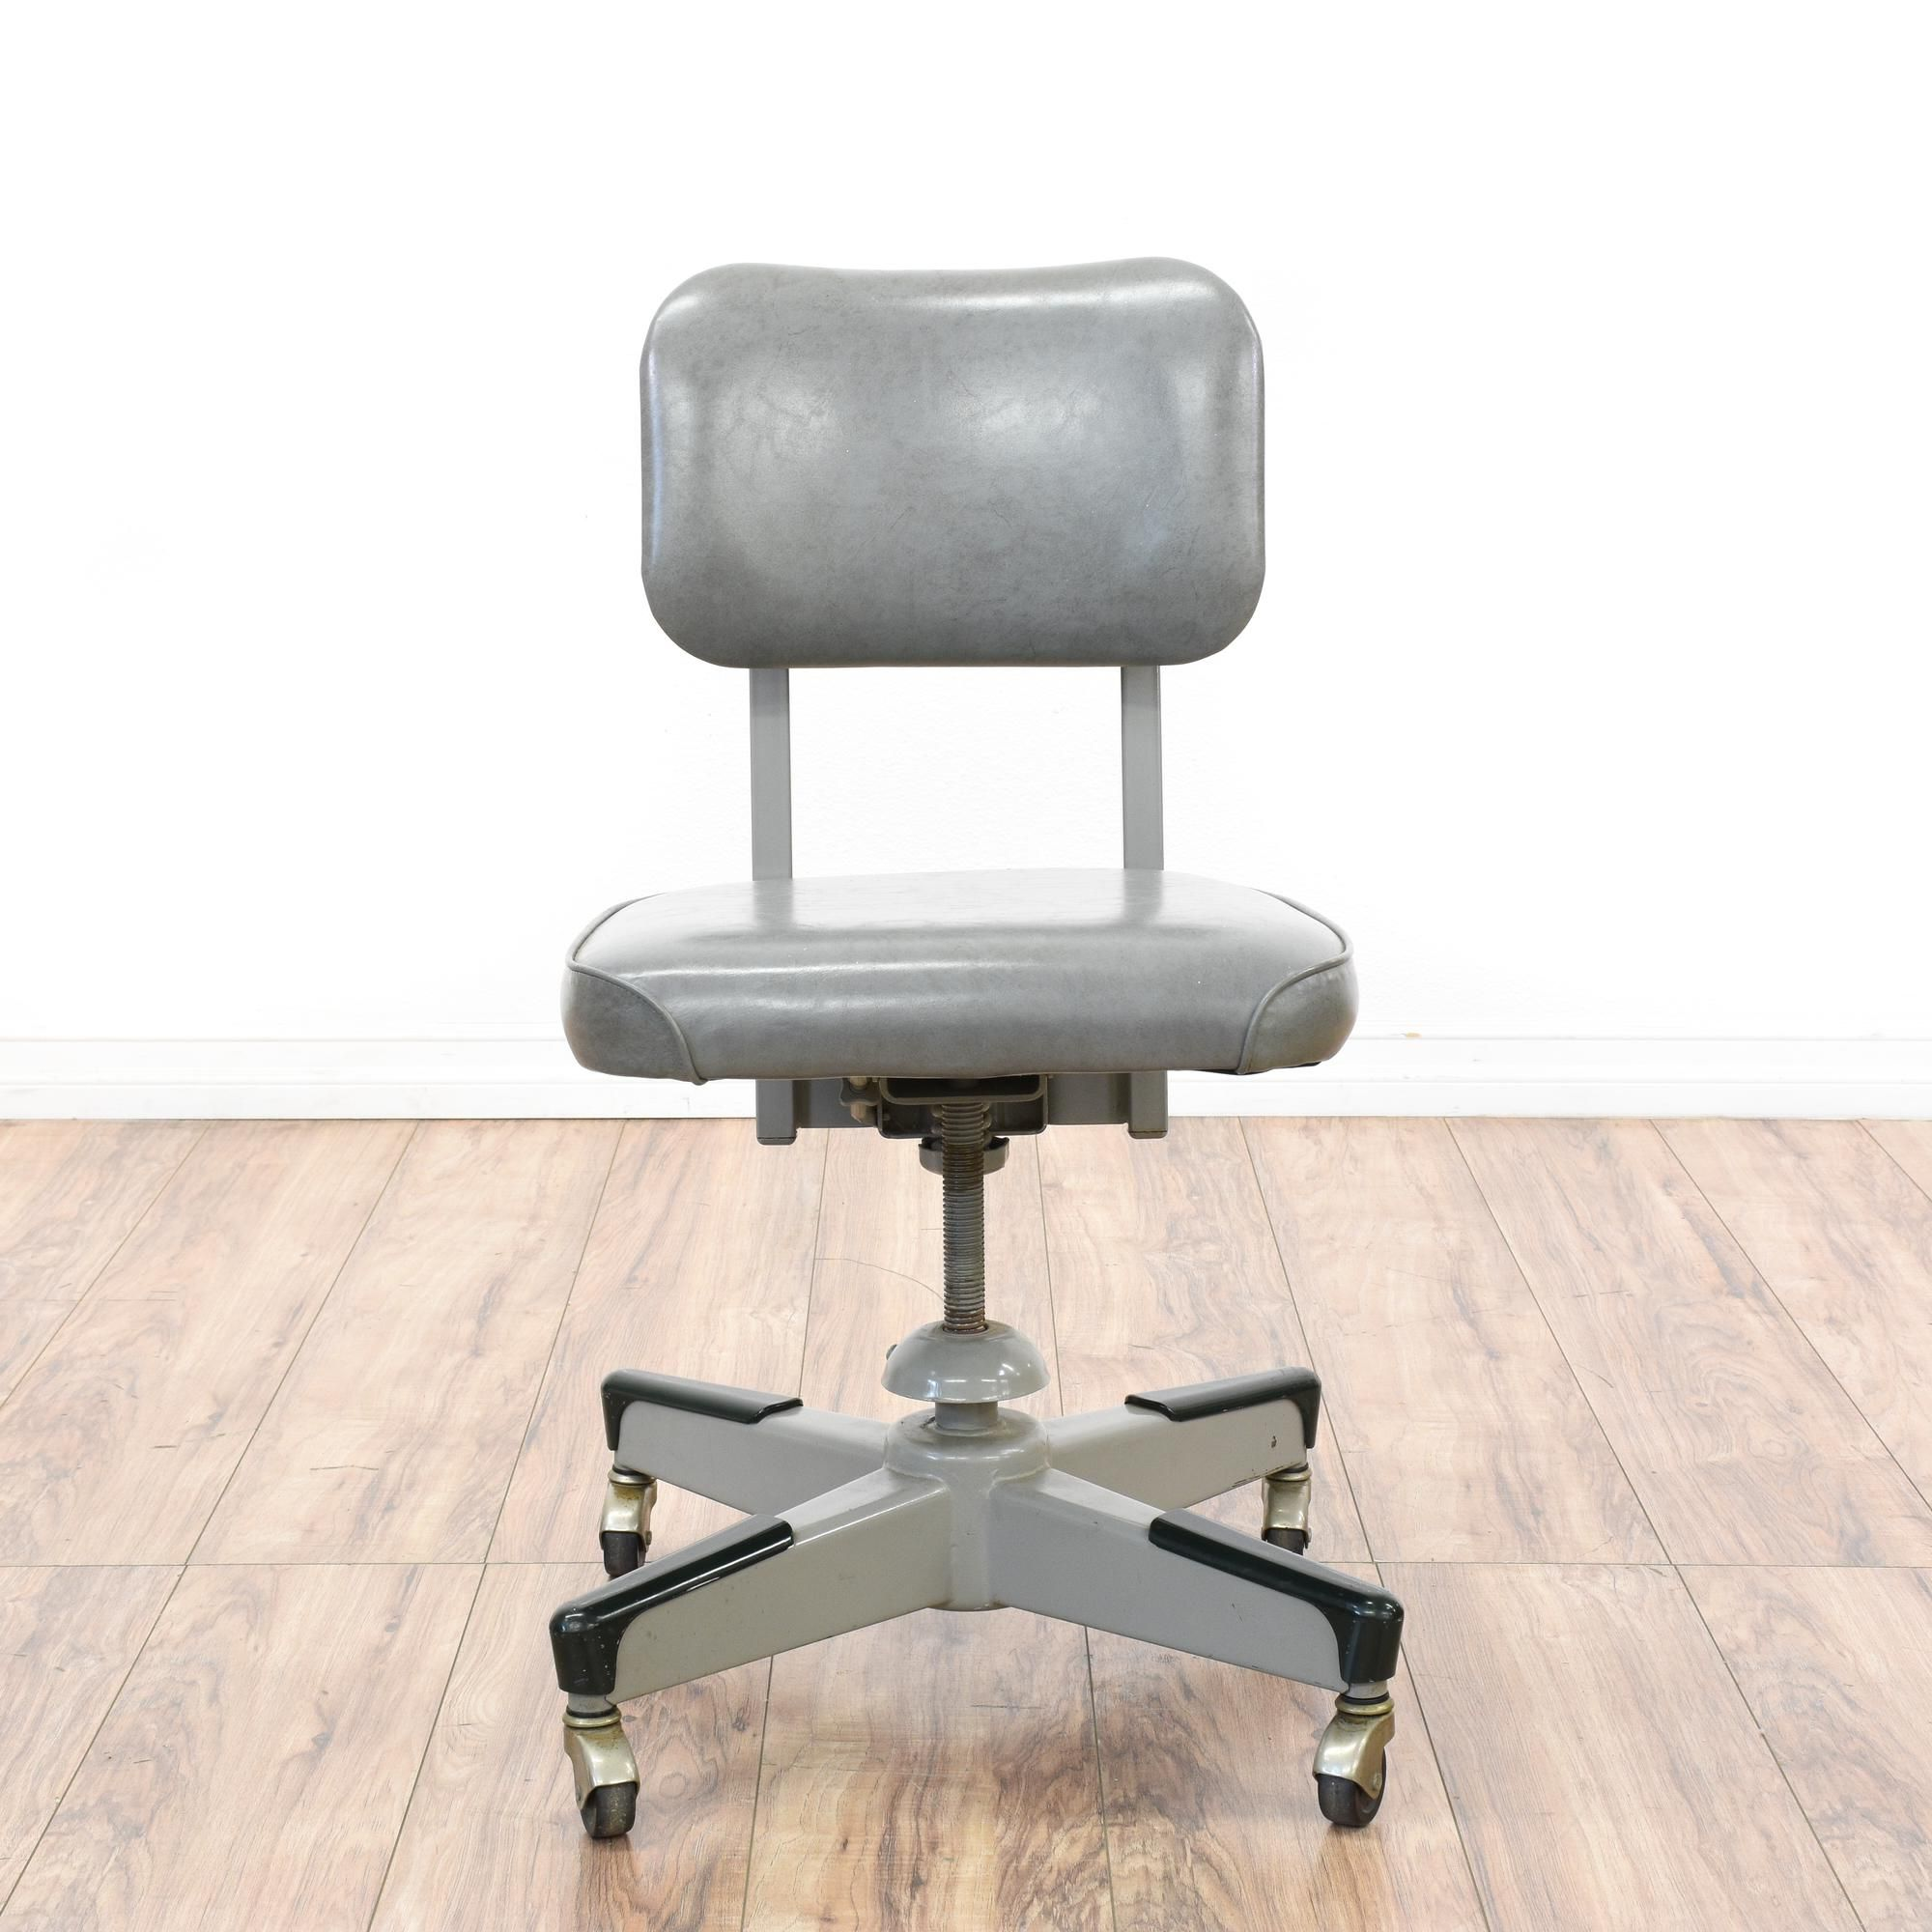 This retro industrial office chair is featured in a durable metal